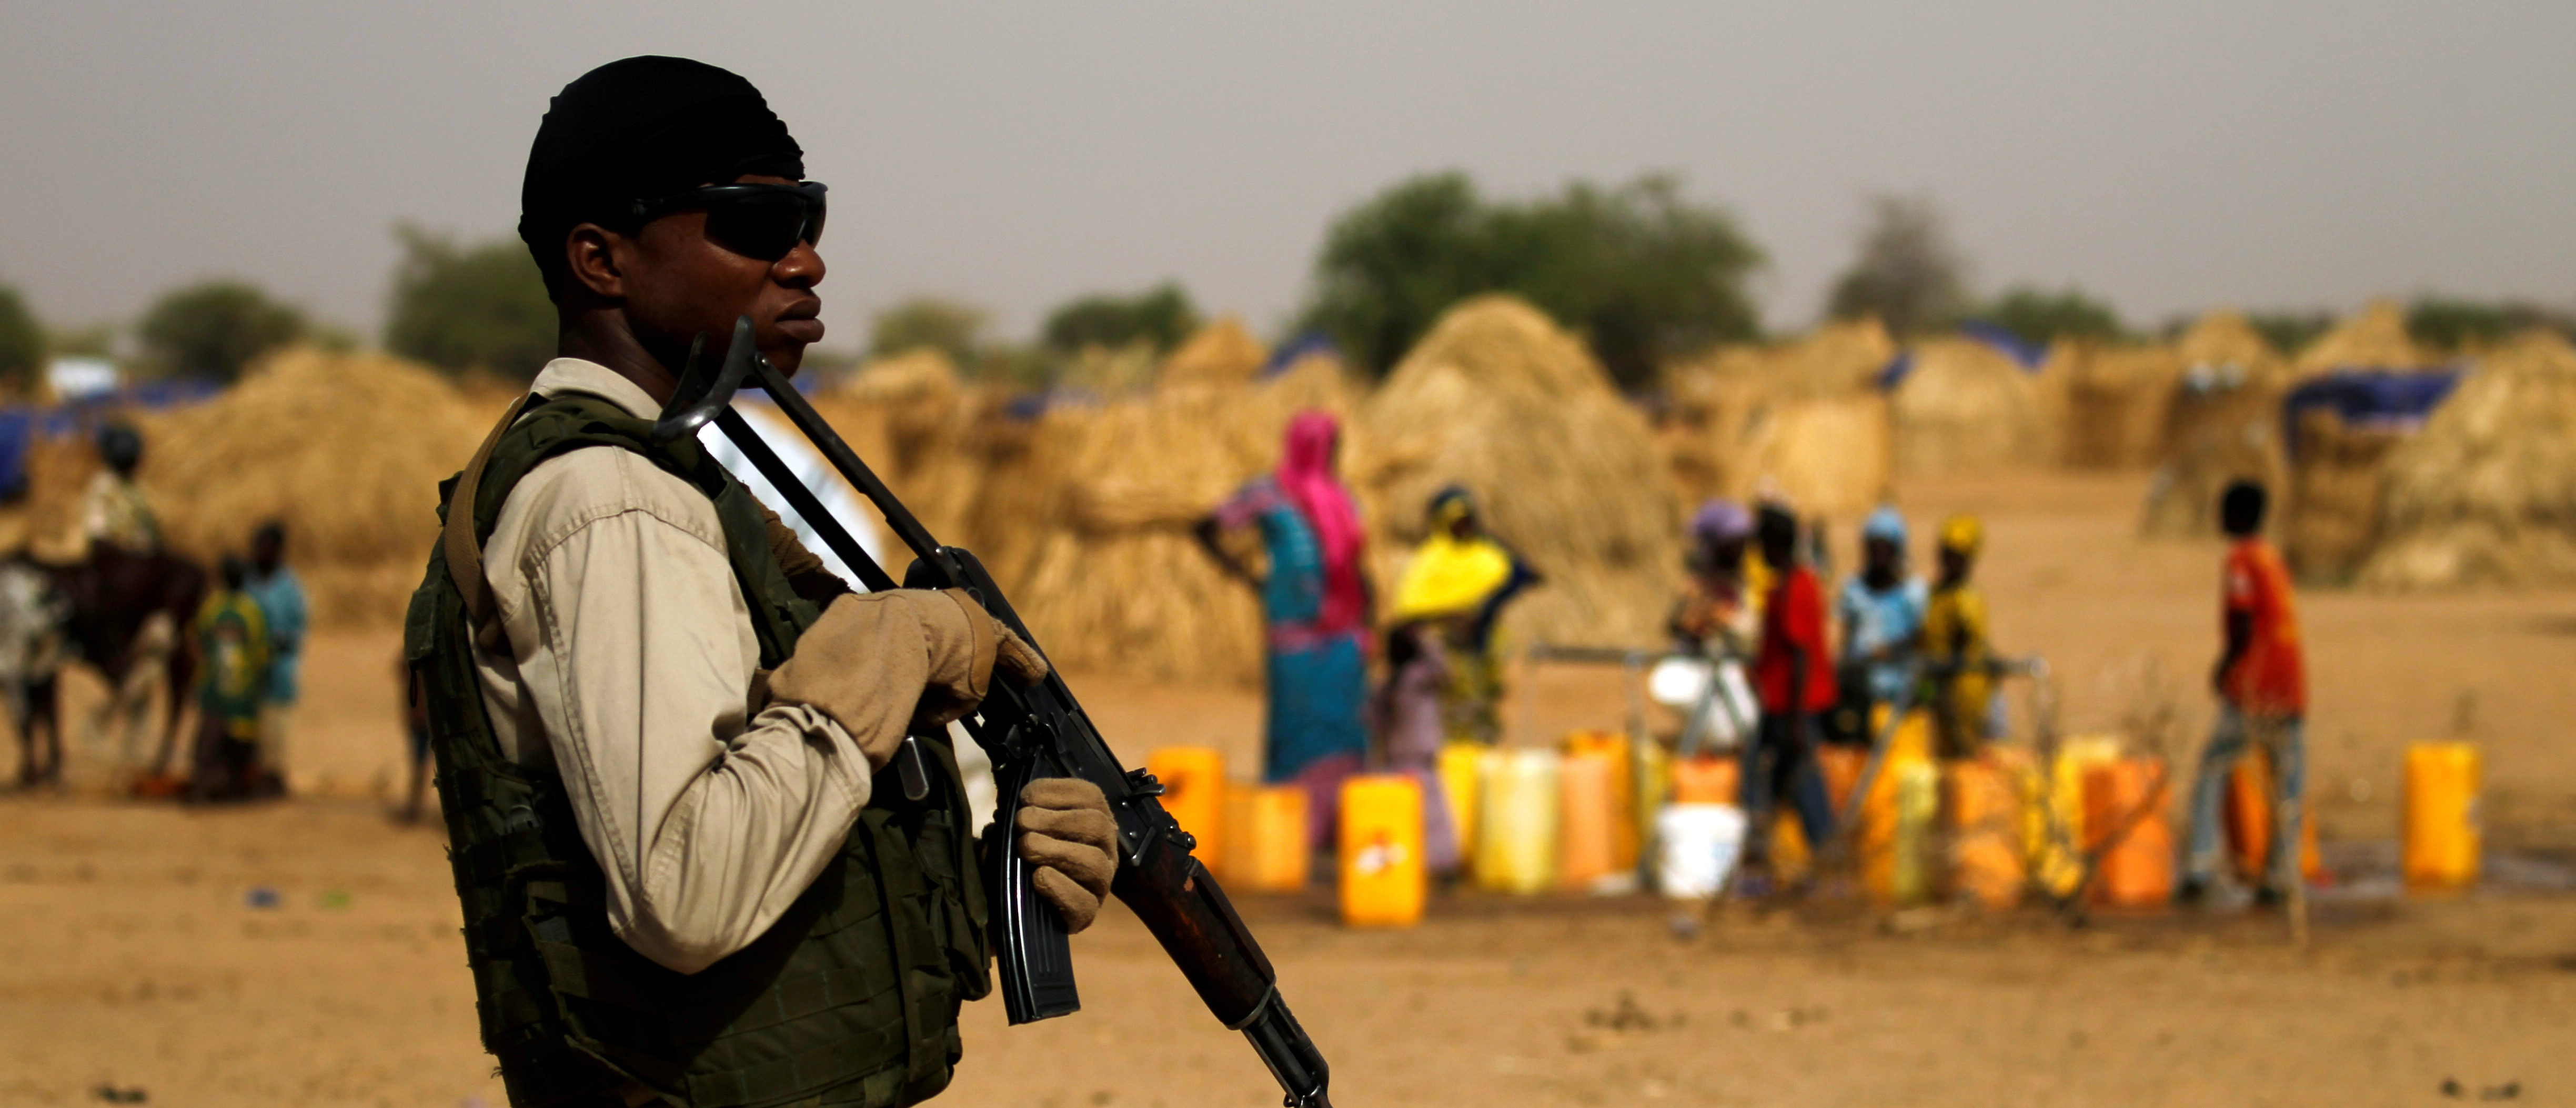 FILE PHOTO: A Nigerien soldier stands guard in a camp of the city of Diffa during the visit of Niger's Interior Minister Mohamed Bazoum following attacks by Boko Haram fighters in the region of Diffa, Niger June 18,2016. REUTERS/Luc Gnago - D1AETKPXWZAA/File Photo - RC14FEC39AD0